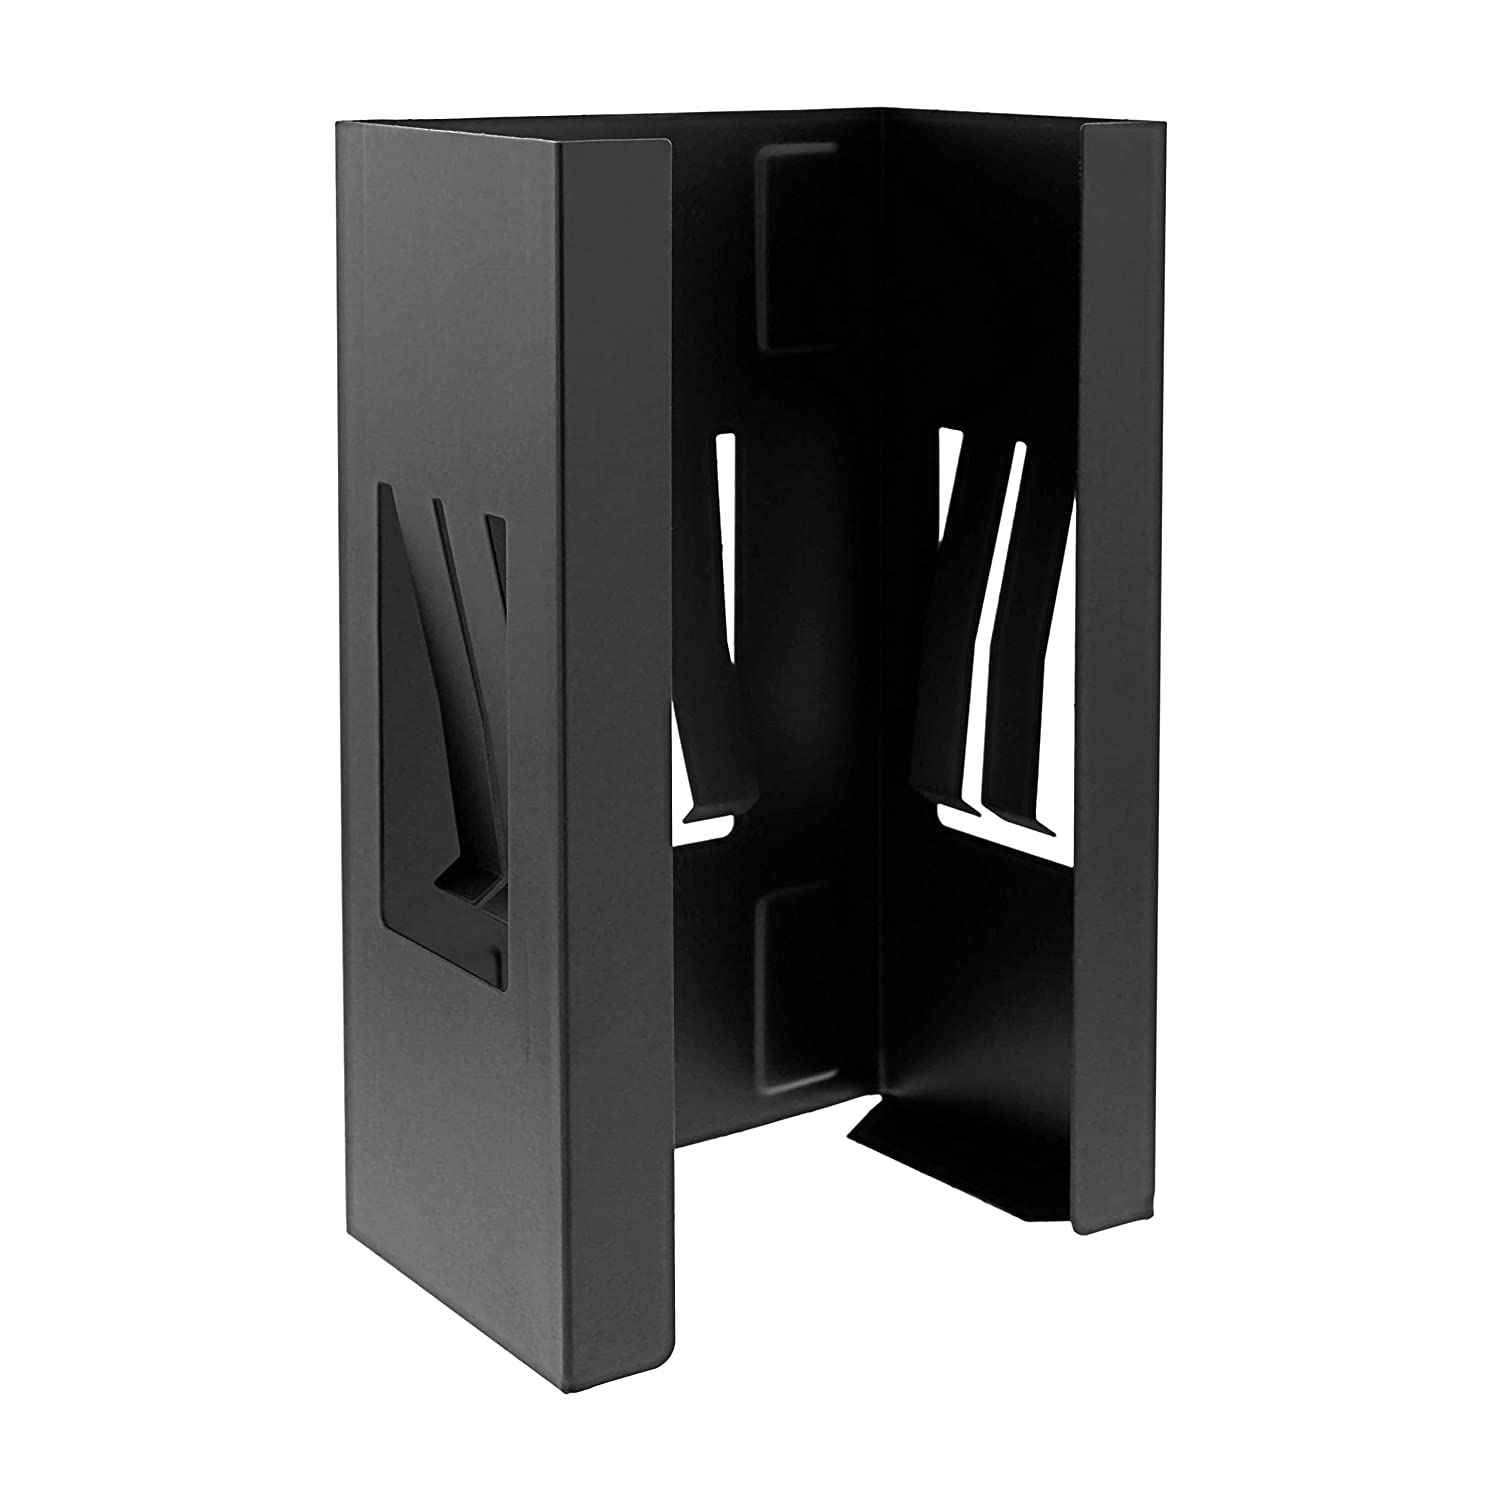 TCP Global Magnetic Glove and Tissue Dispenser Holder - Holds Boxes of Gloves, Towels, Wipes, Tissues - Mount onto a Tool Box or in Garages, Workshops and Kitchens